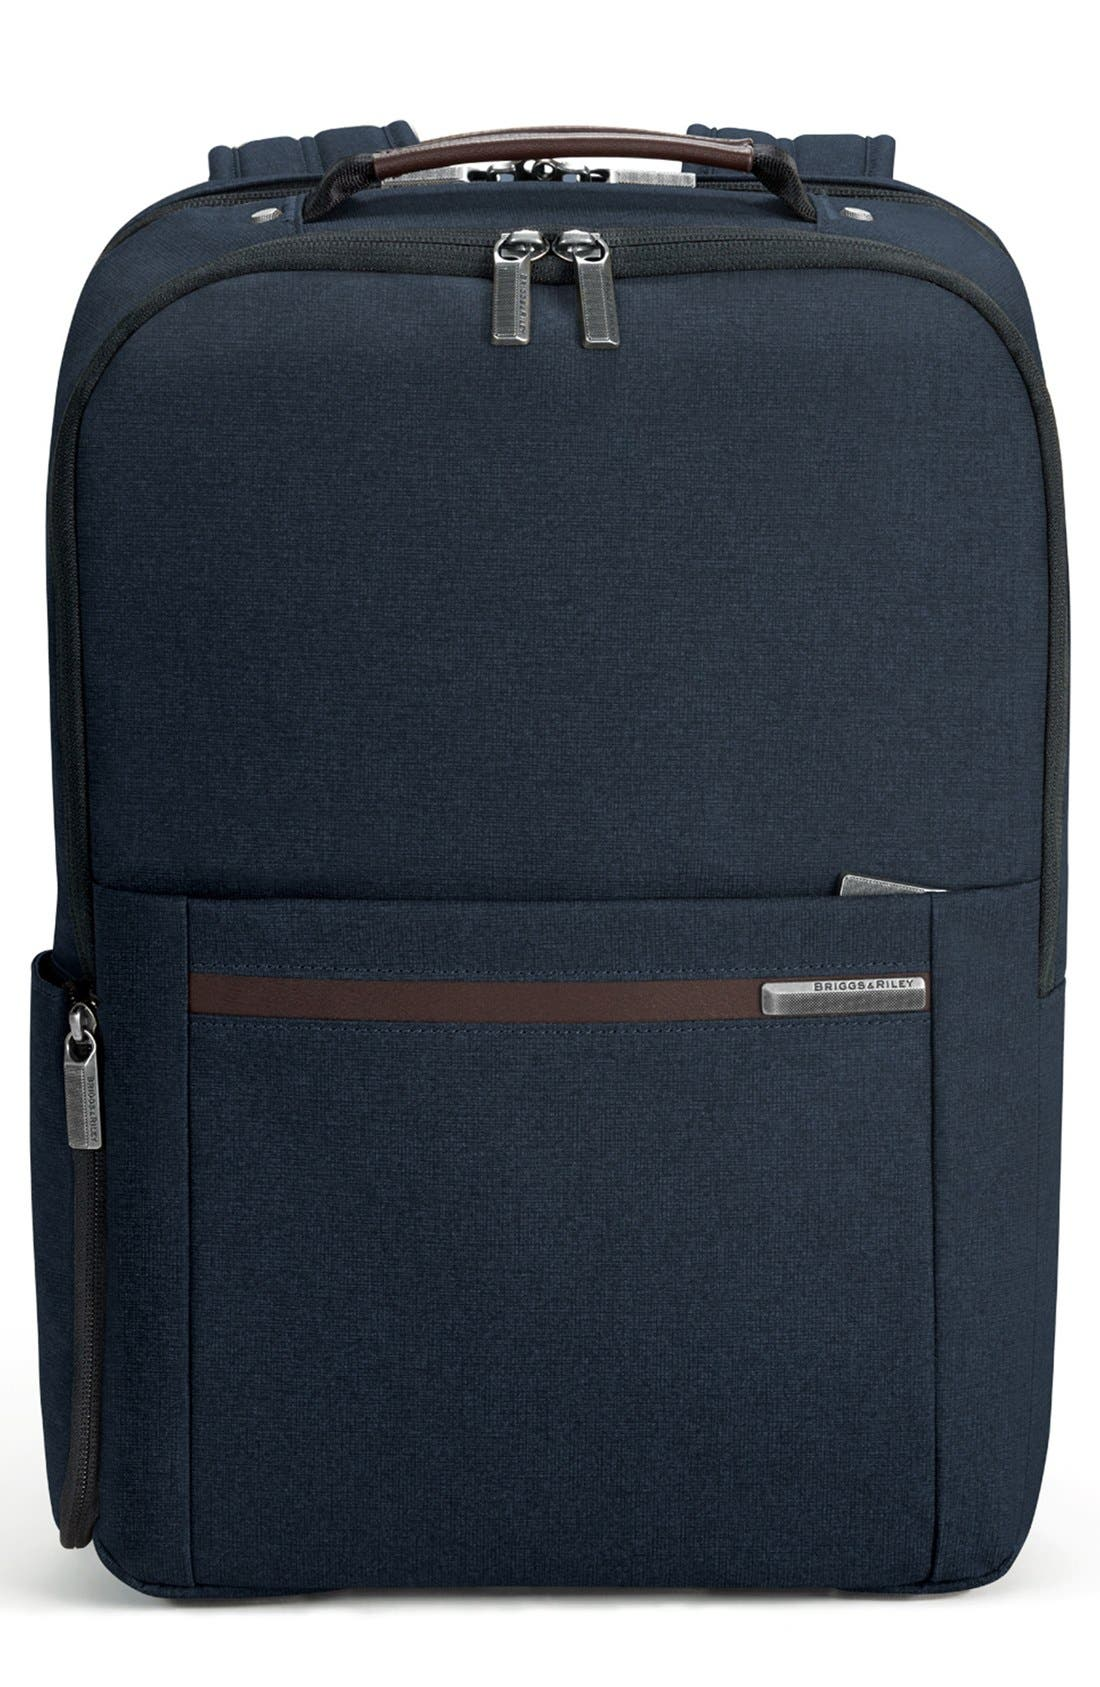 Kinzie Street Medium Backpack,                         Main,                         color, Navy Blue